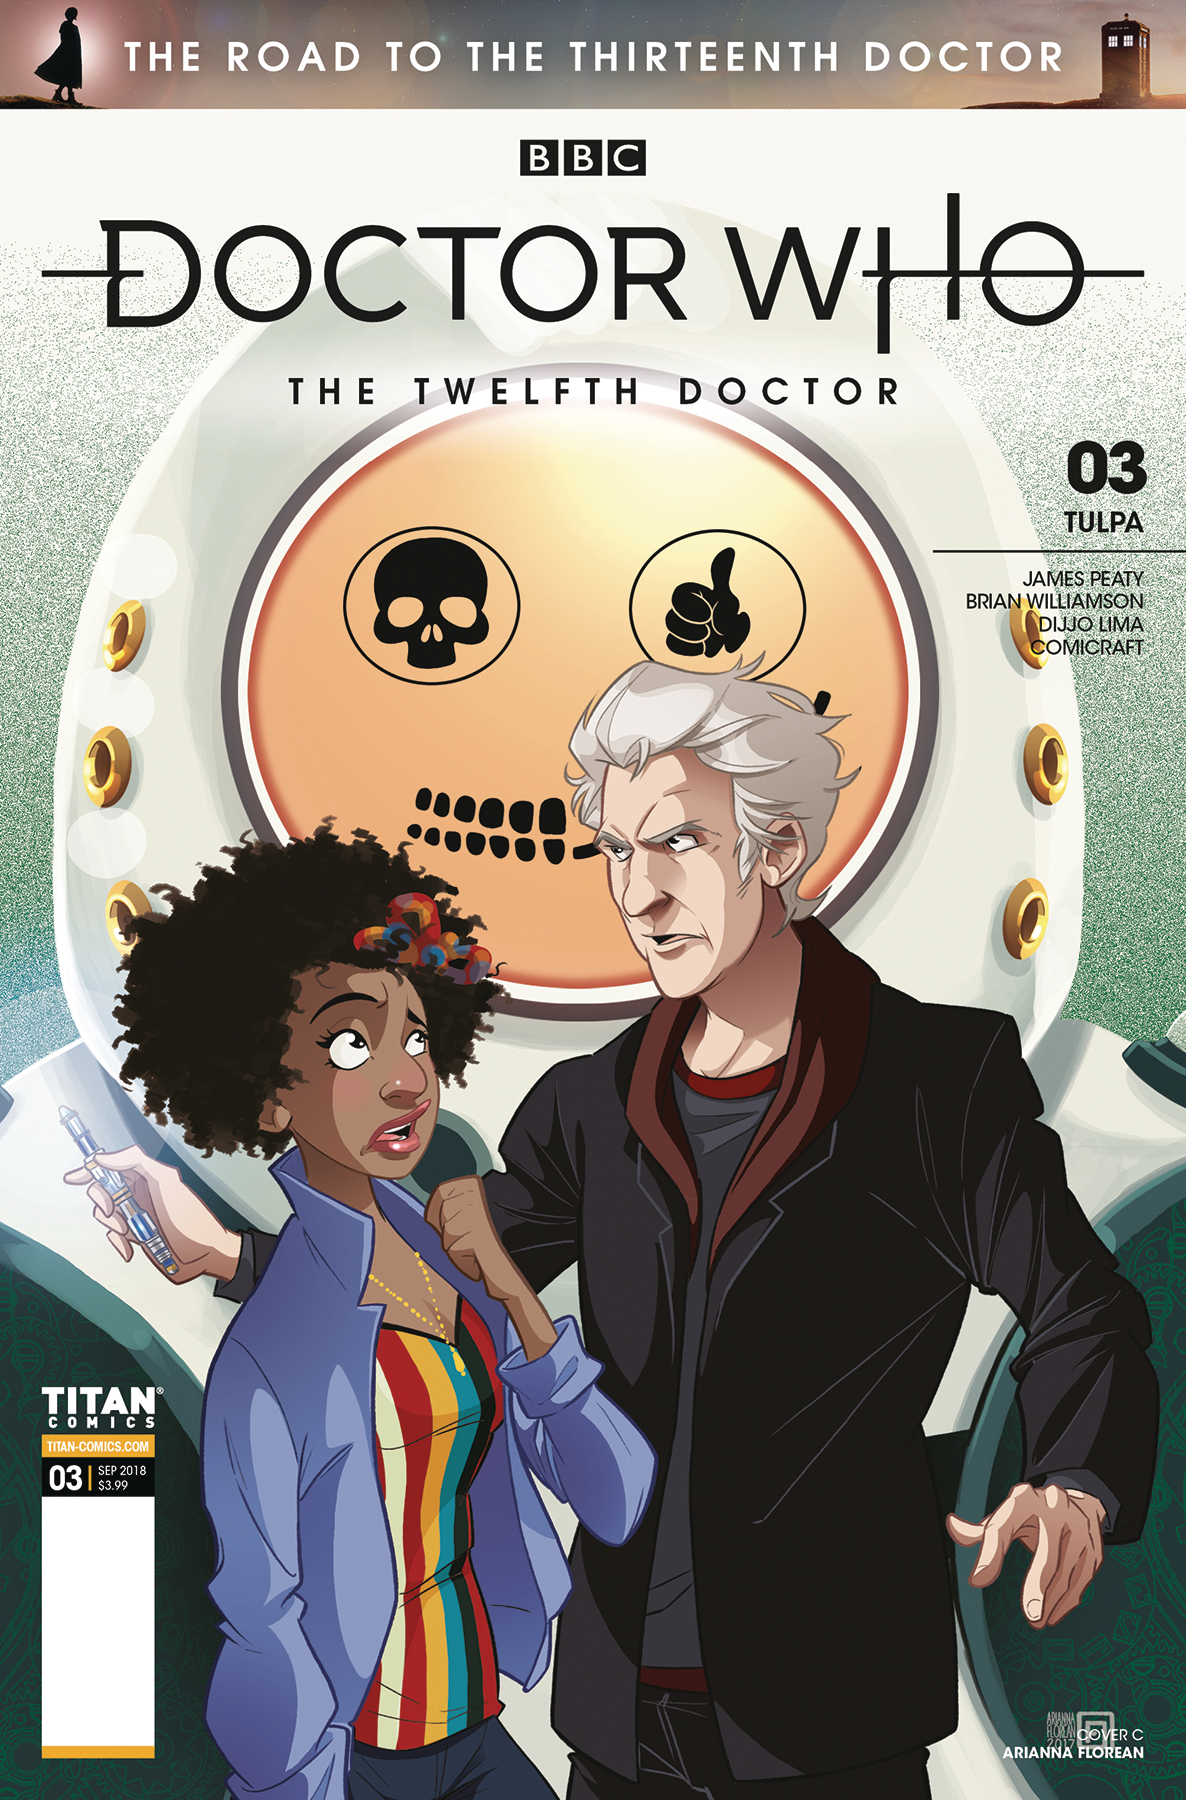 DOCTOR WHO ROAD TO 13TH DR #3 12TH CVR C FLOREAN